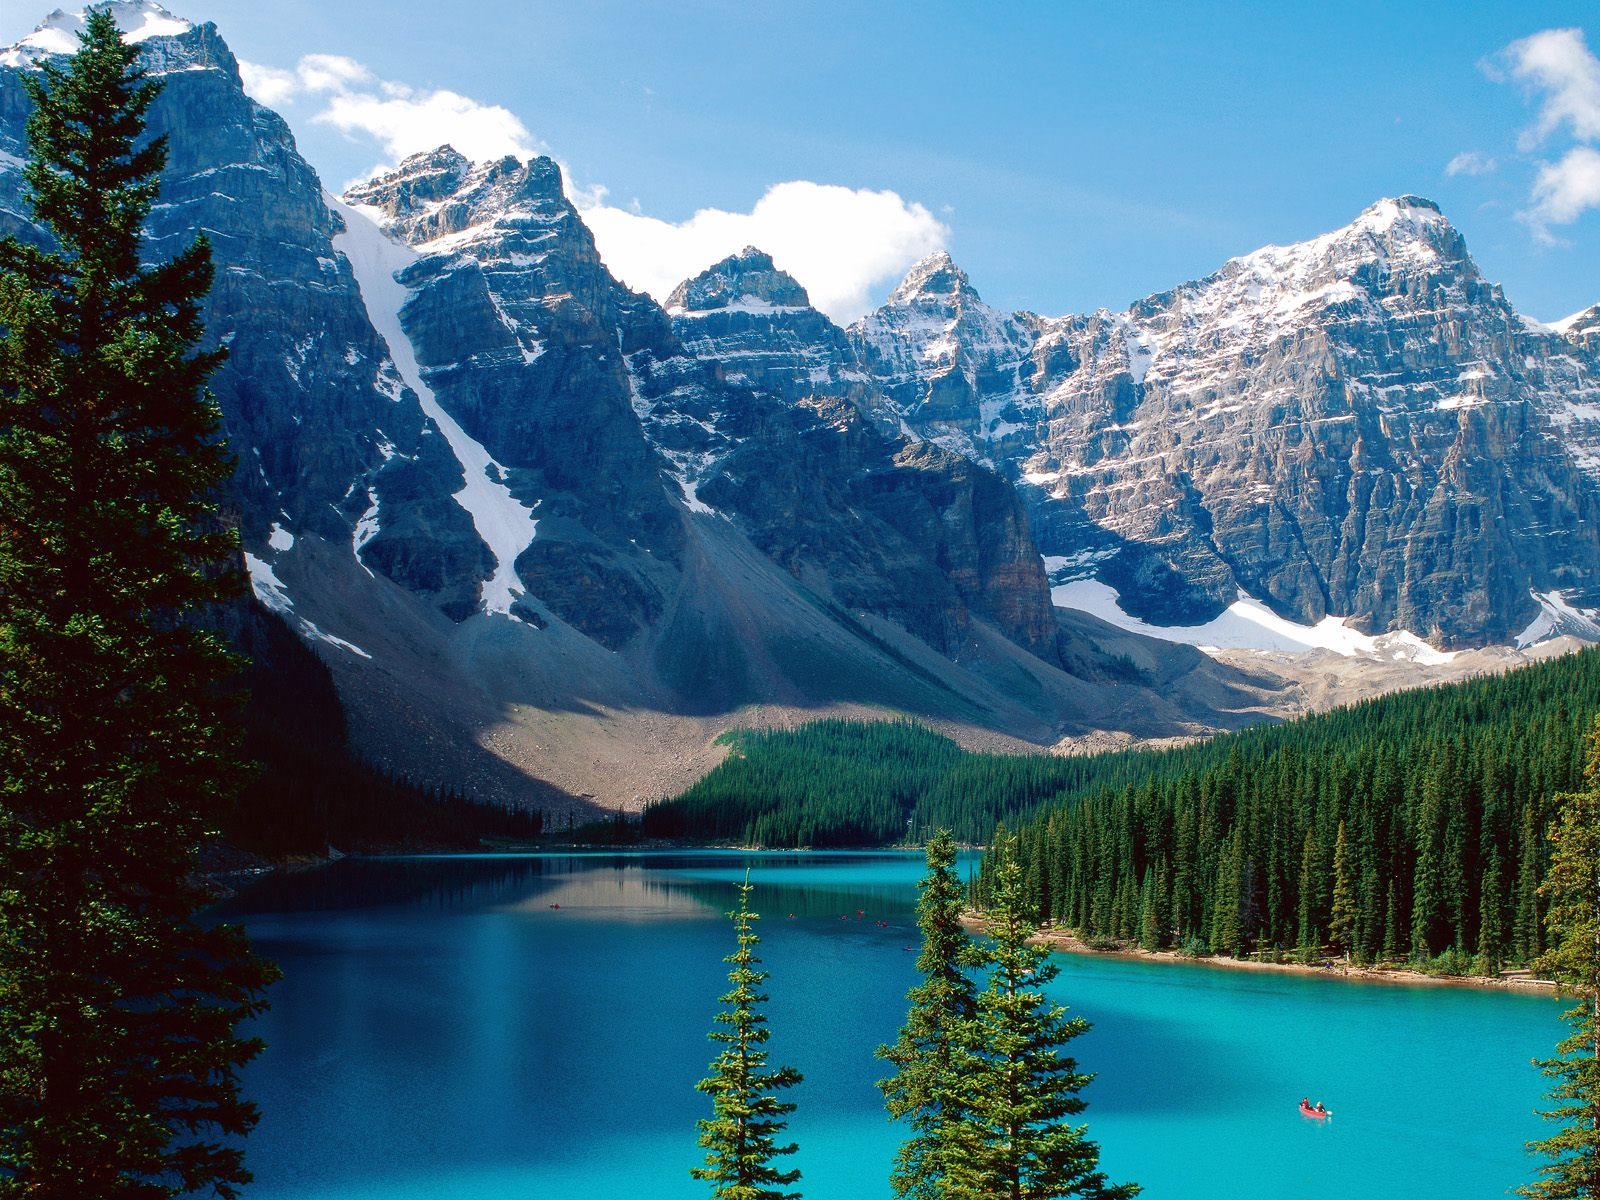 Banff National Park Canada wallpaper Moraine Lake Banff National Park 1600x1200